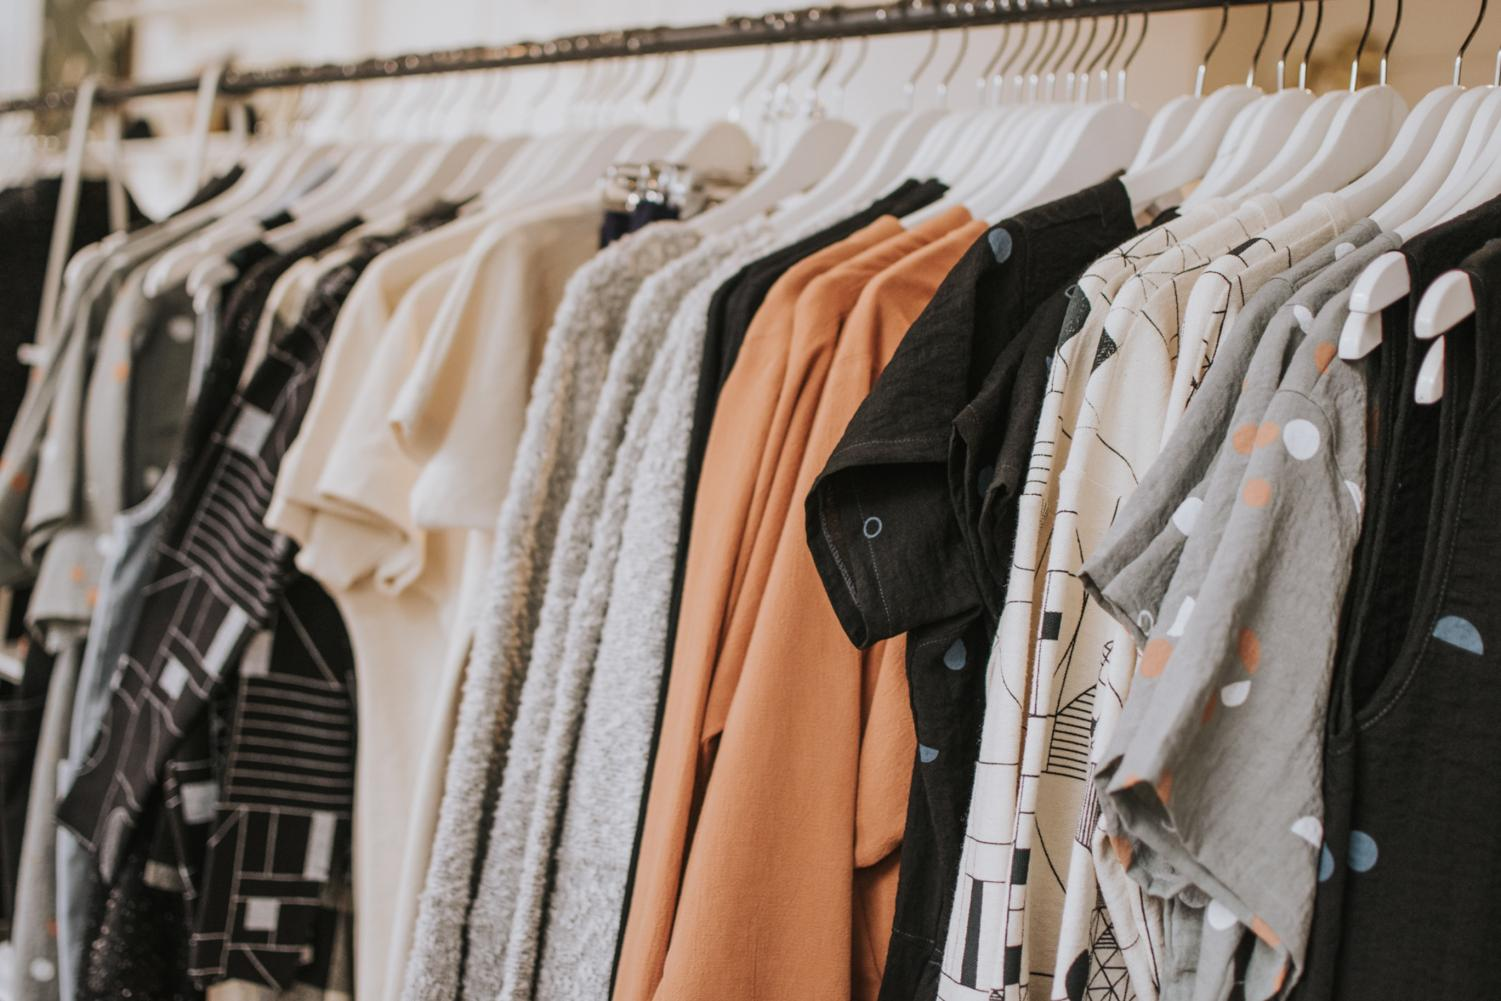 The 2020 fashion trends are subverting traditional values while still throwing back to older trends. Photo Credit: Unsplash